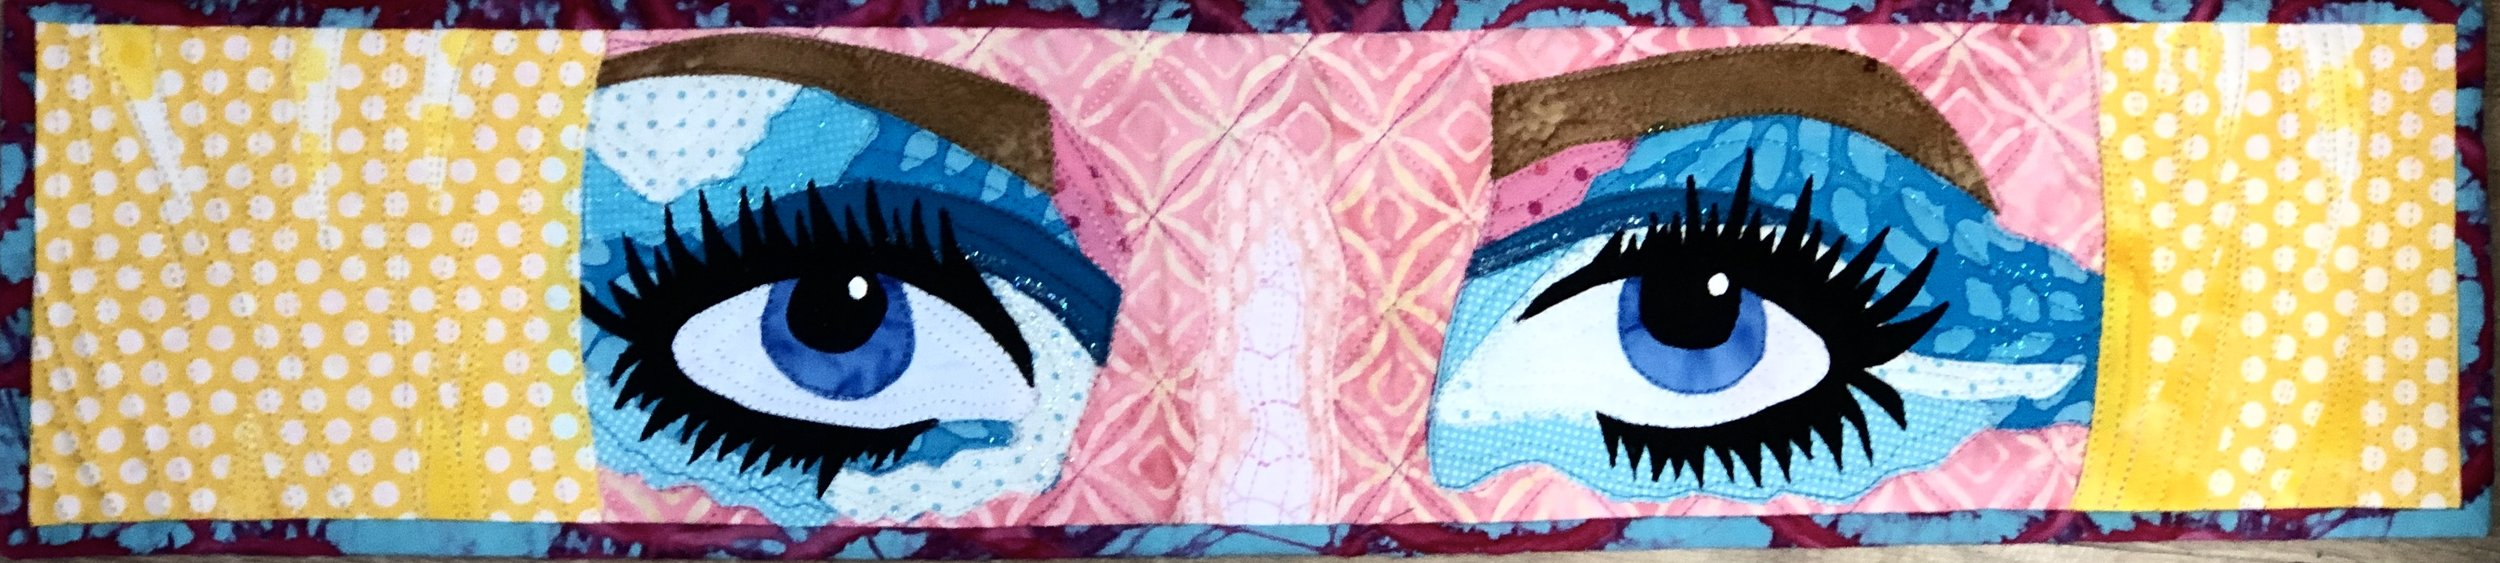 This is entry number 2 based on my 2010 quilt Bubbly Blonde. It was a large quilt so I did not redraw it.